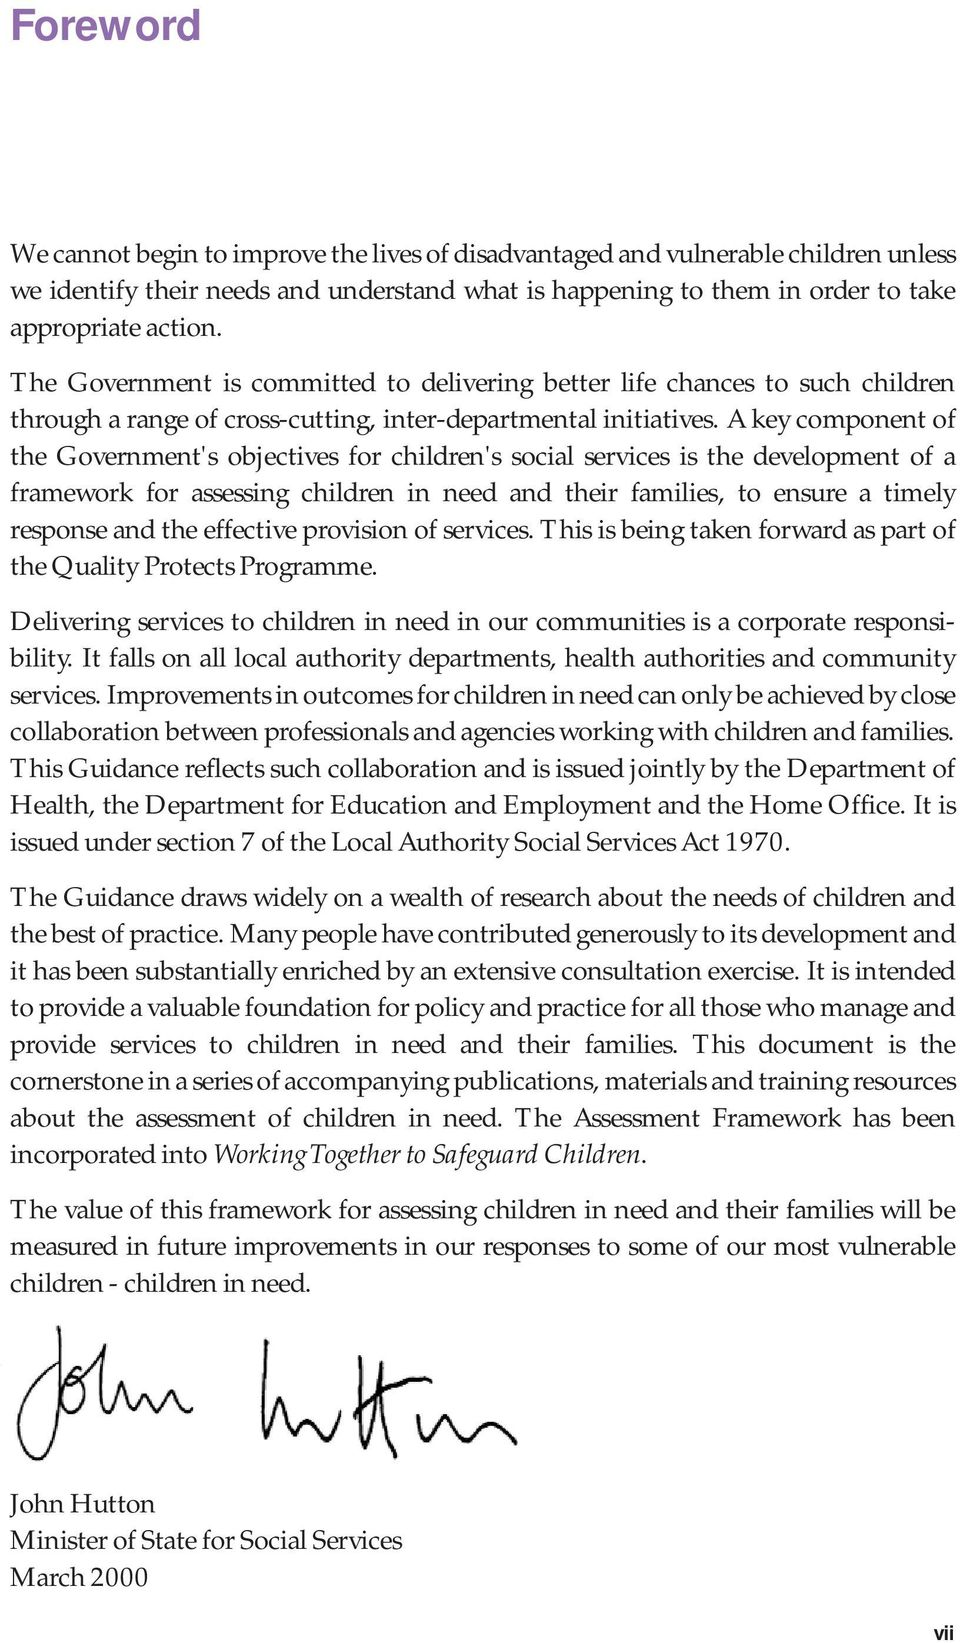 A key component of the Government's objectives for children's social services is the development of a framework for assessing children in need and their families, to ensure a timely response and the